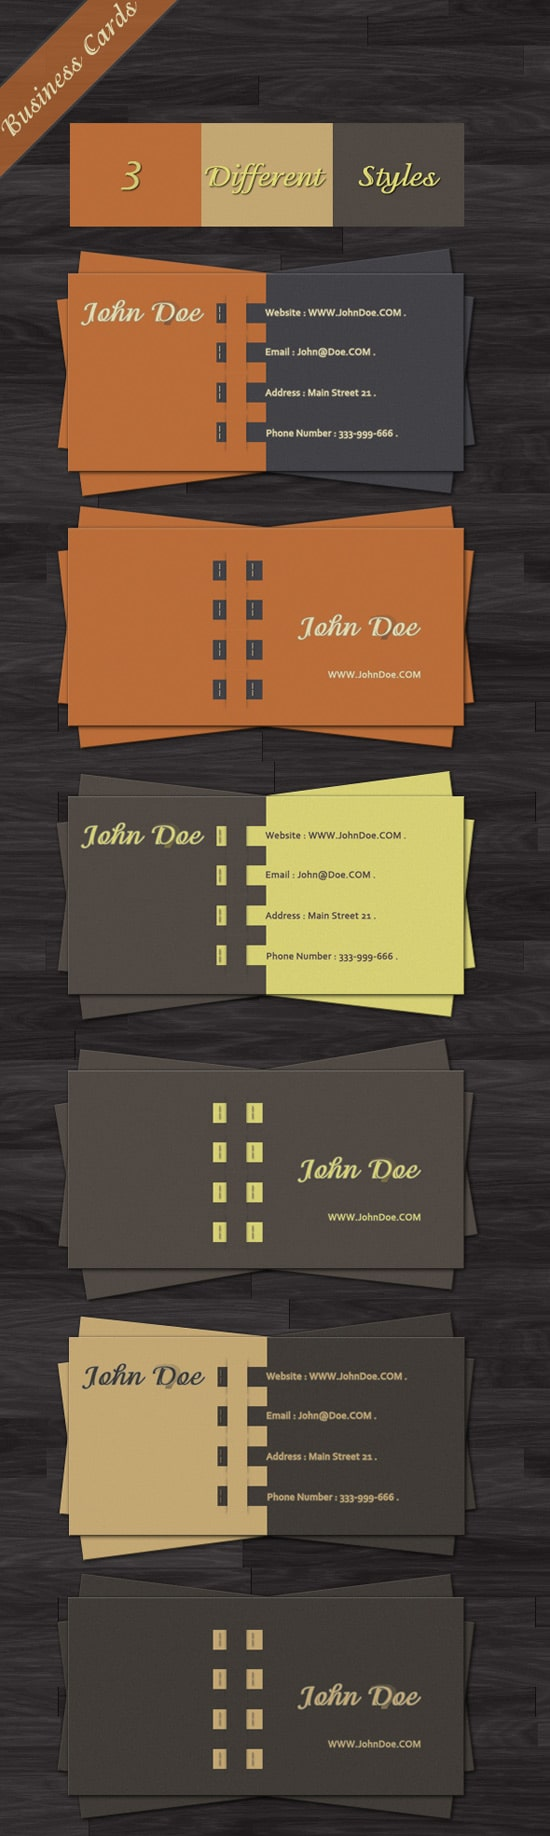 100 free business card templates designrfix business is business free psd vector business card reheart Images